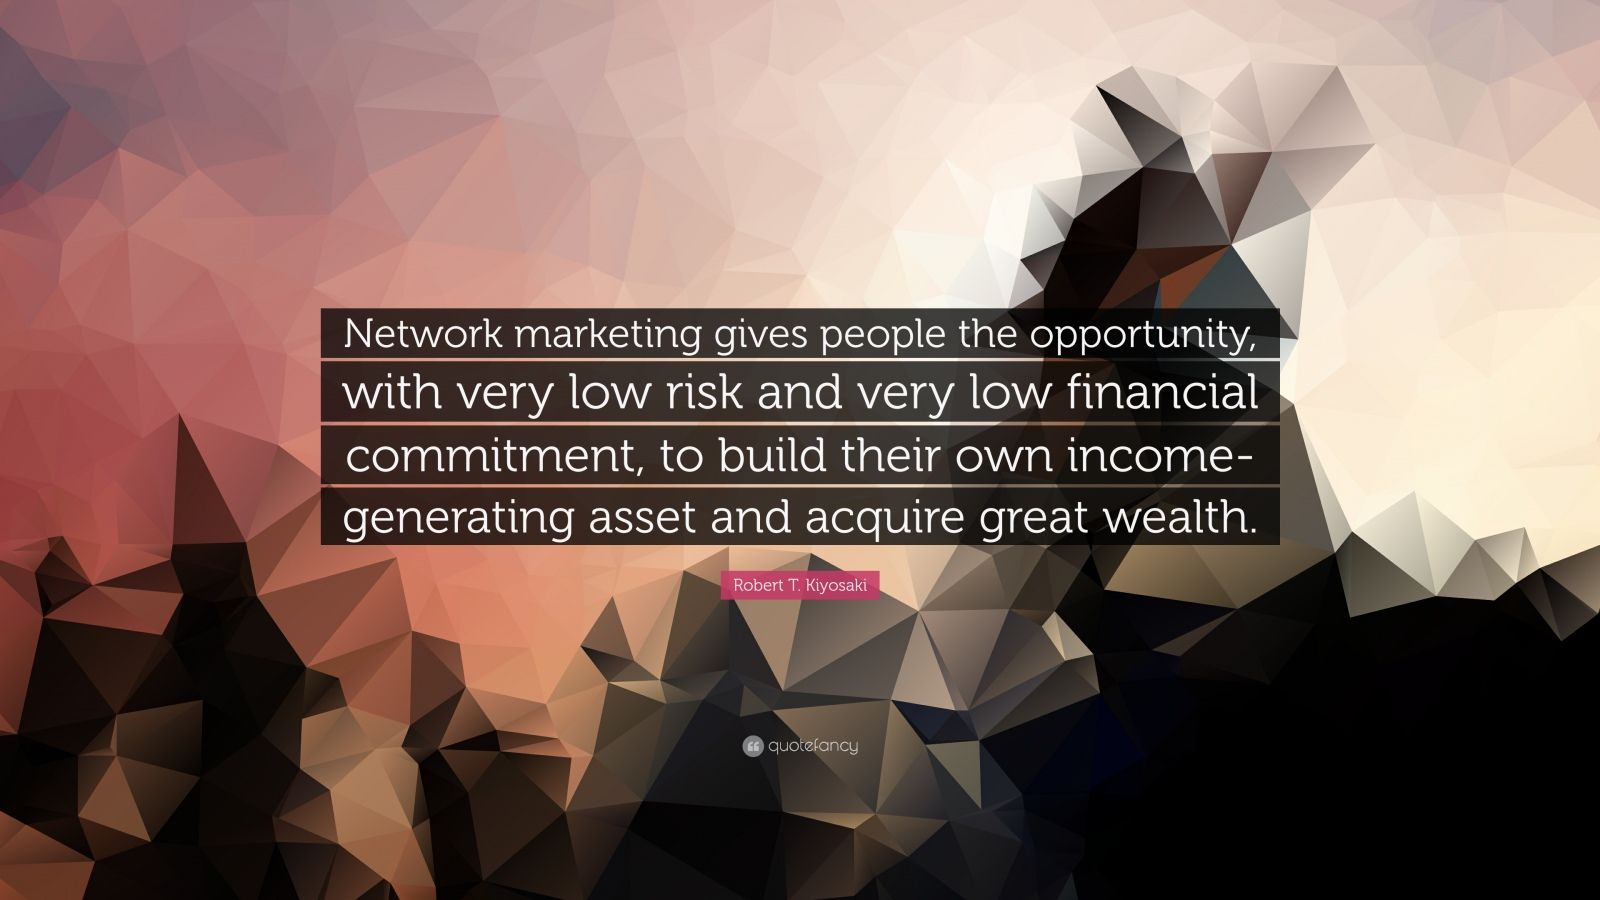 """Robert T. Kiyosaki Quote: """"Network marketing gives people the opportunity, with very low risk and very low financial commitment, to build their own income-generating asset and acquire great wealth."""""""